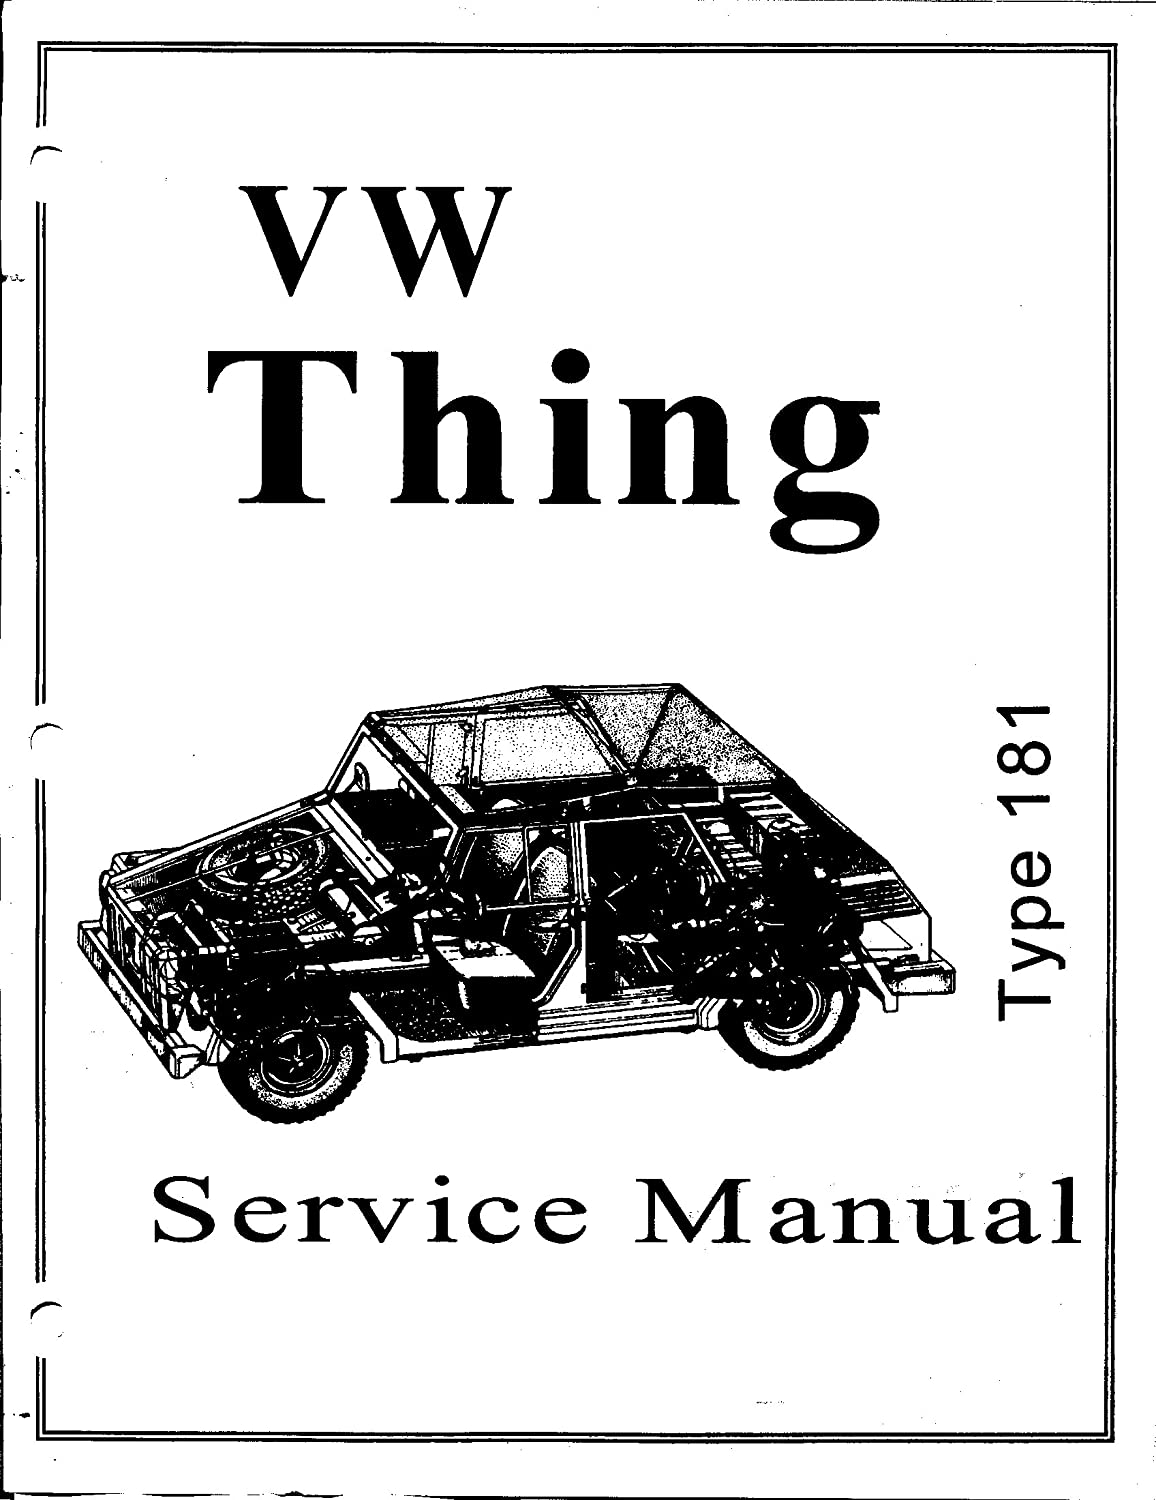 Amazon.com : 1973 1974 Volkswagen VW Thing Type 181 Shop Manual Service  Book Guide Hi-Res on a CD : Everything Else